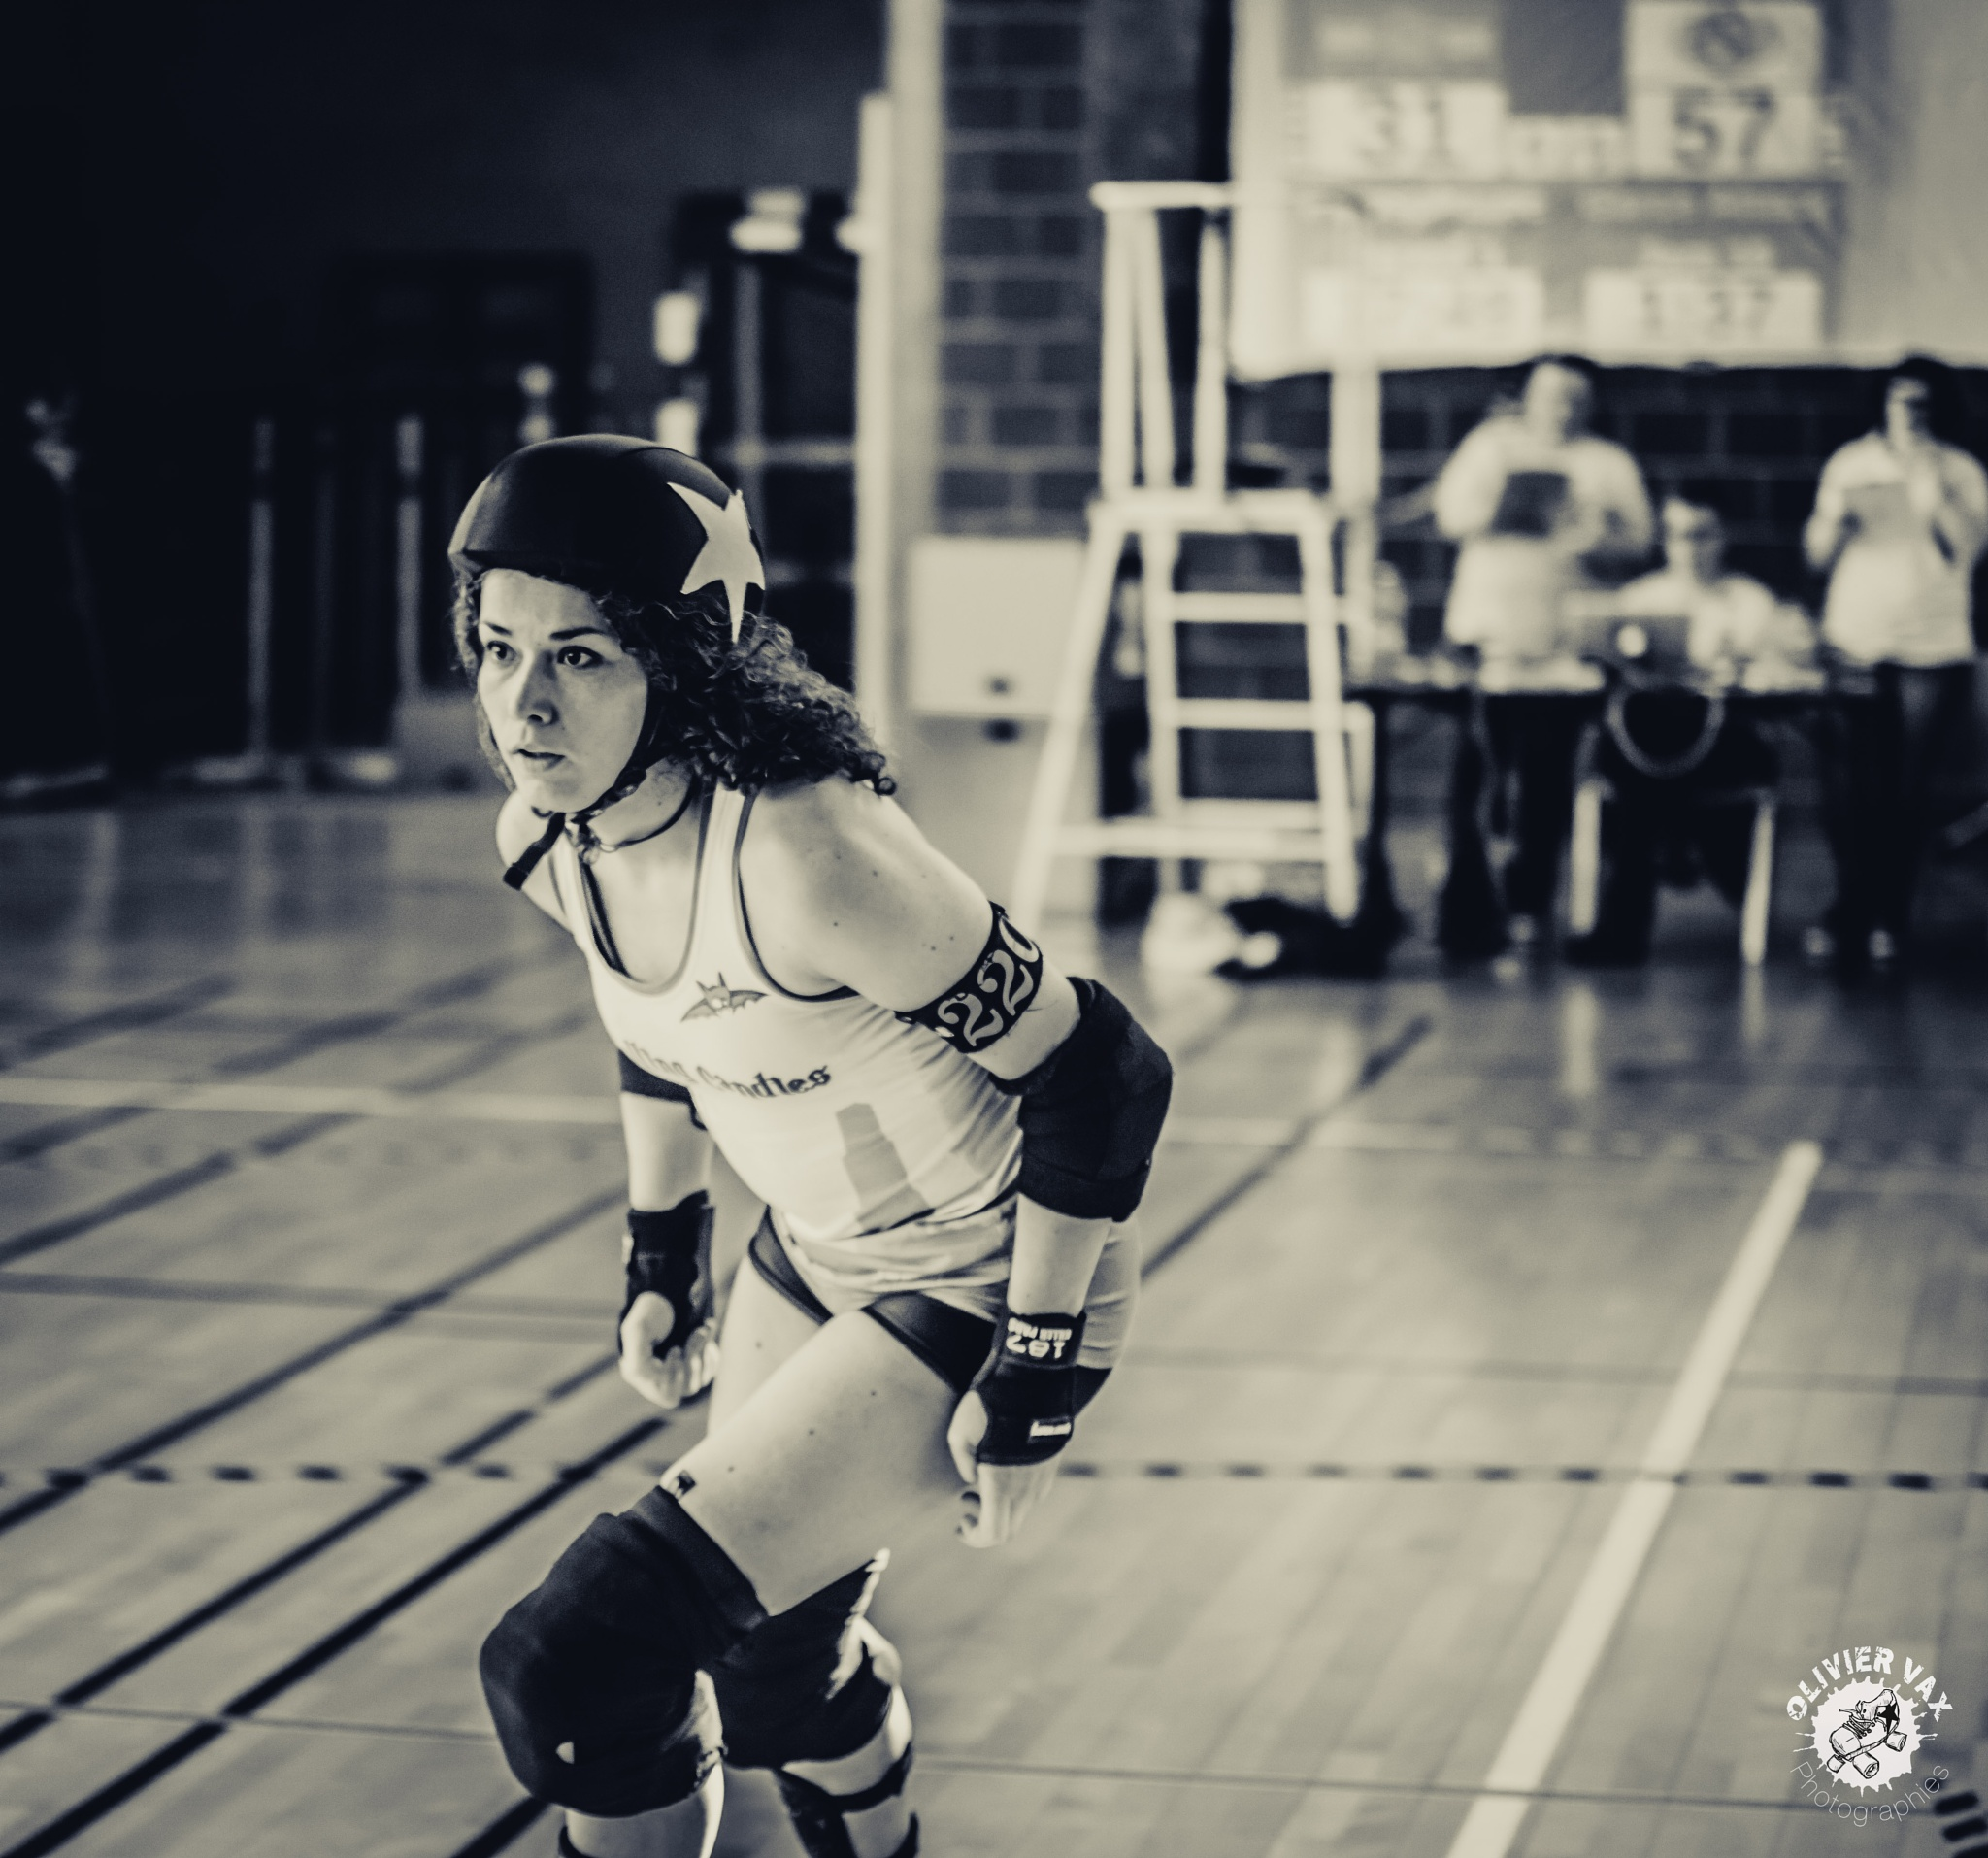 Roller Derby by Olivier Vax by Olivier Vax